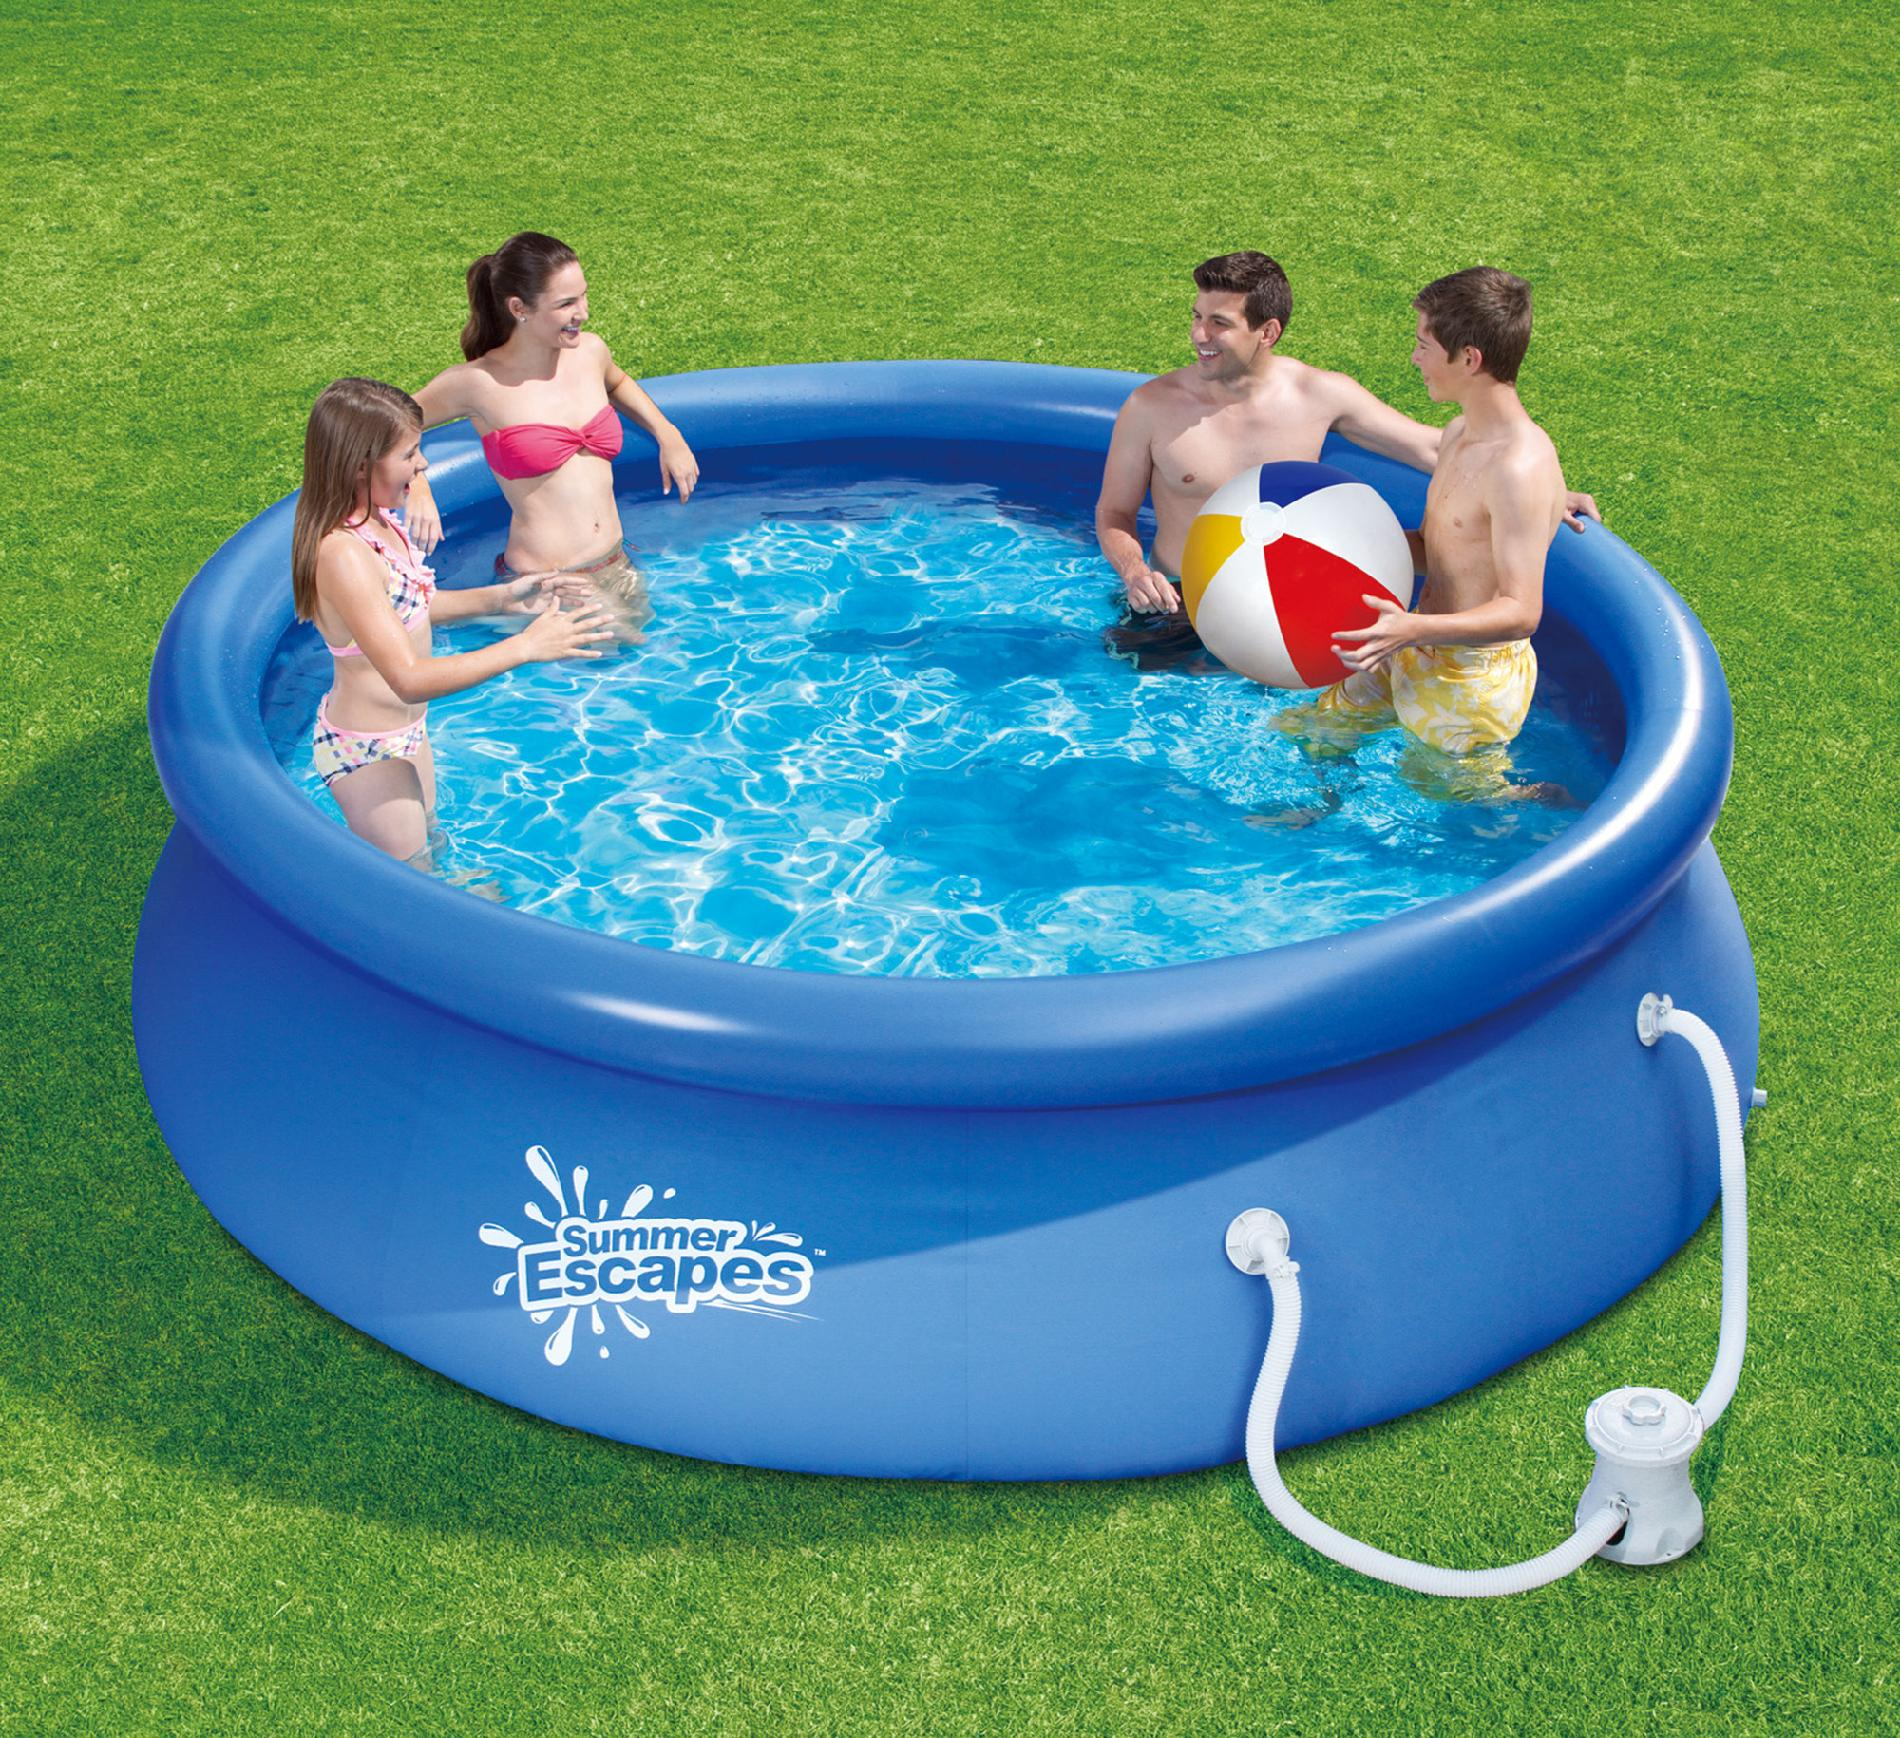 Chlortabletten Quick Up Pool Summer Escapes 10ft By 30in Quick Set Ring Pool Set Sears